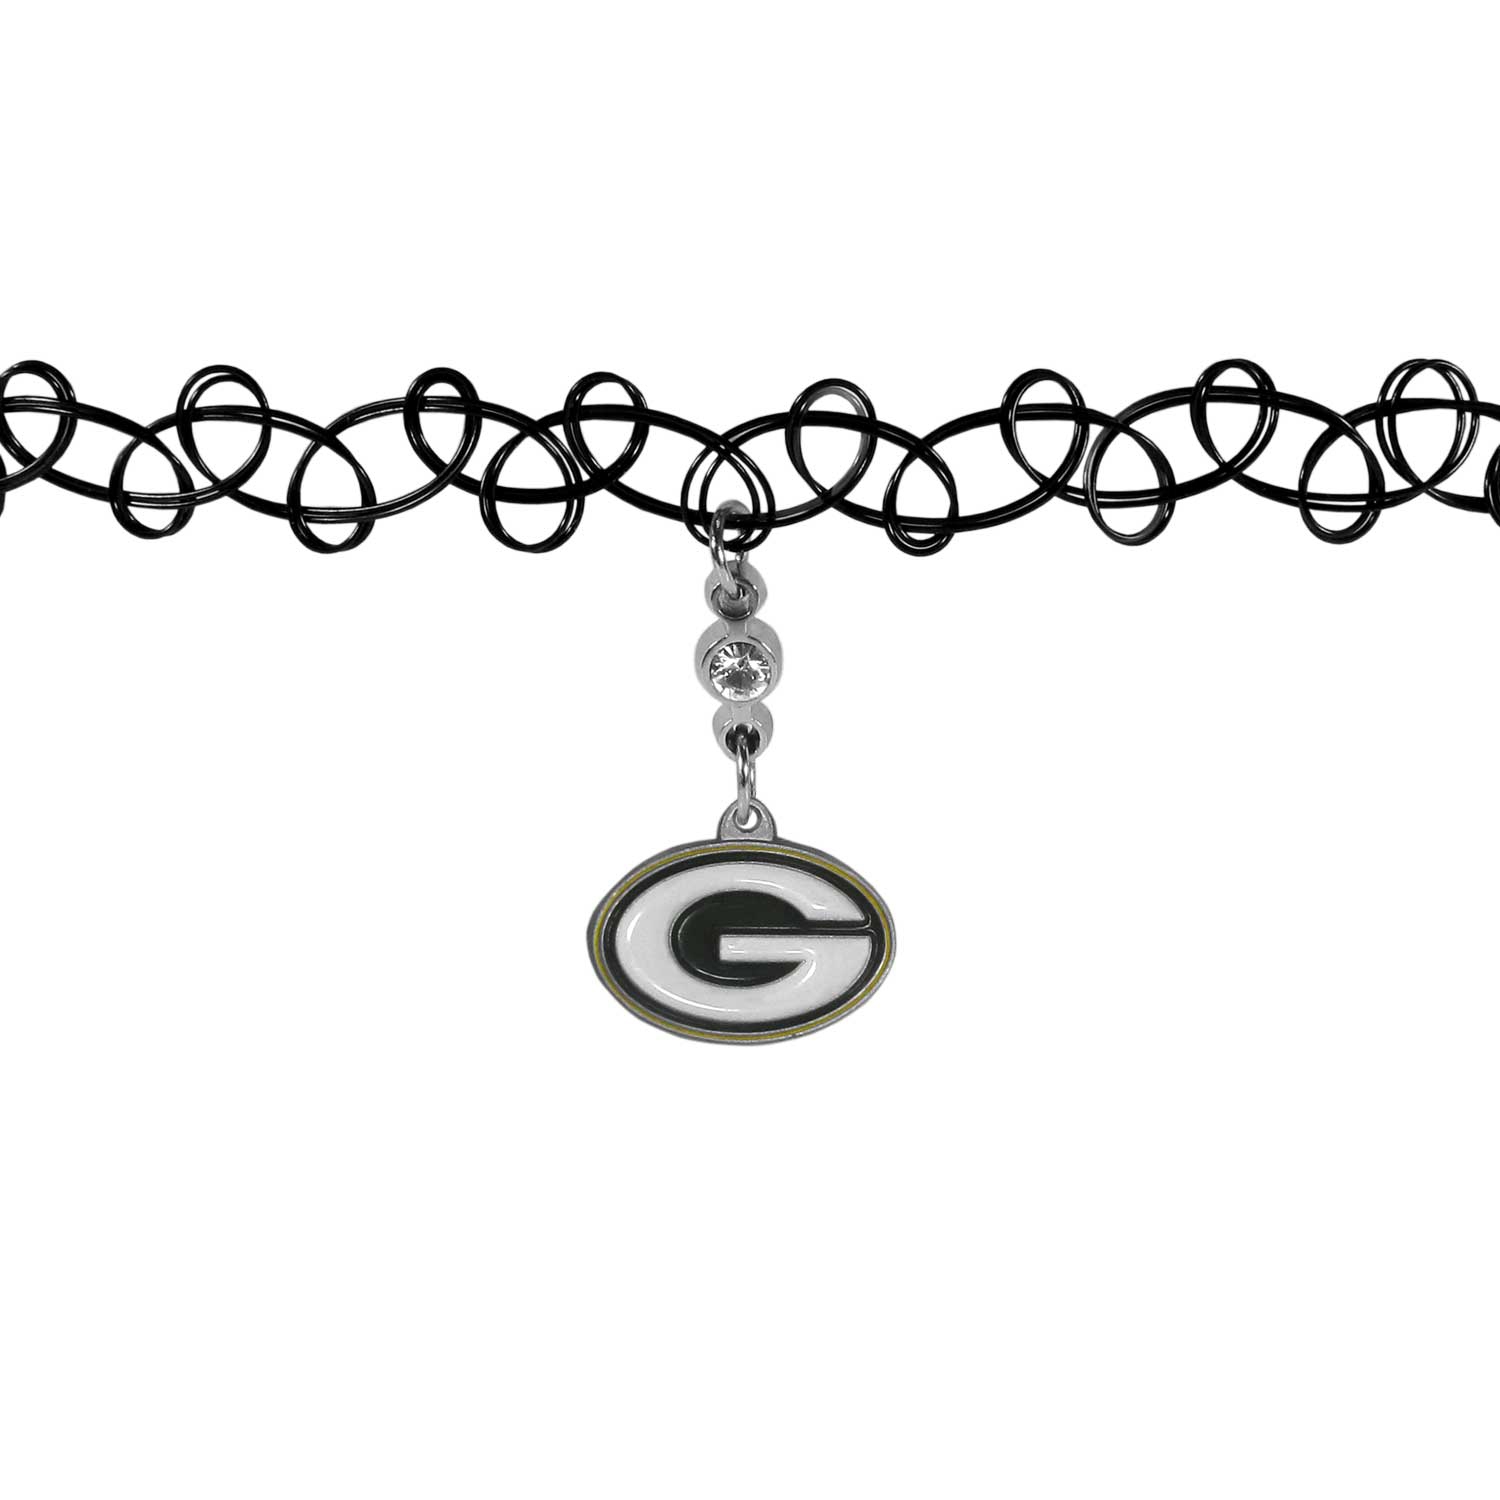 Green Bay Packers Knotted Choker - This retro, knotted choker is a cool and unique piece of fan jewelry. The tattoo style choker features a high polish Green Bay Packers charm with rhinestone accents.